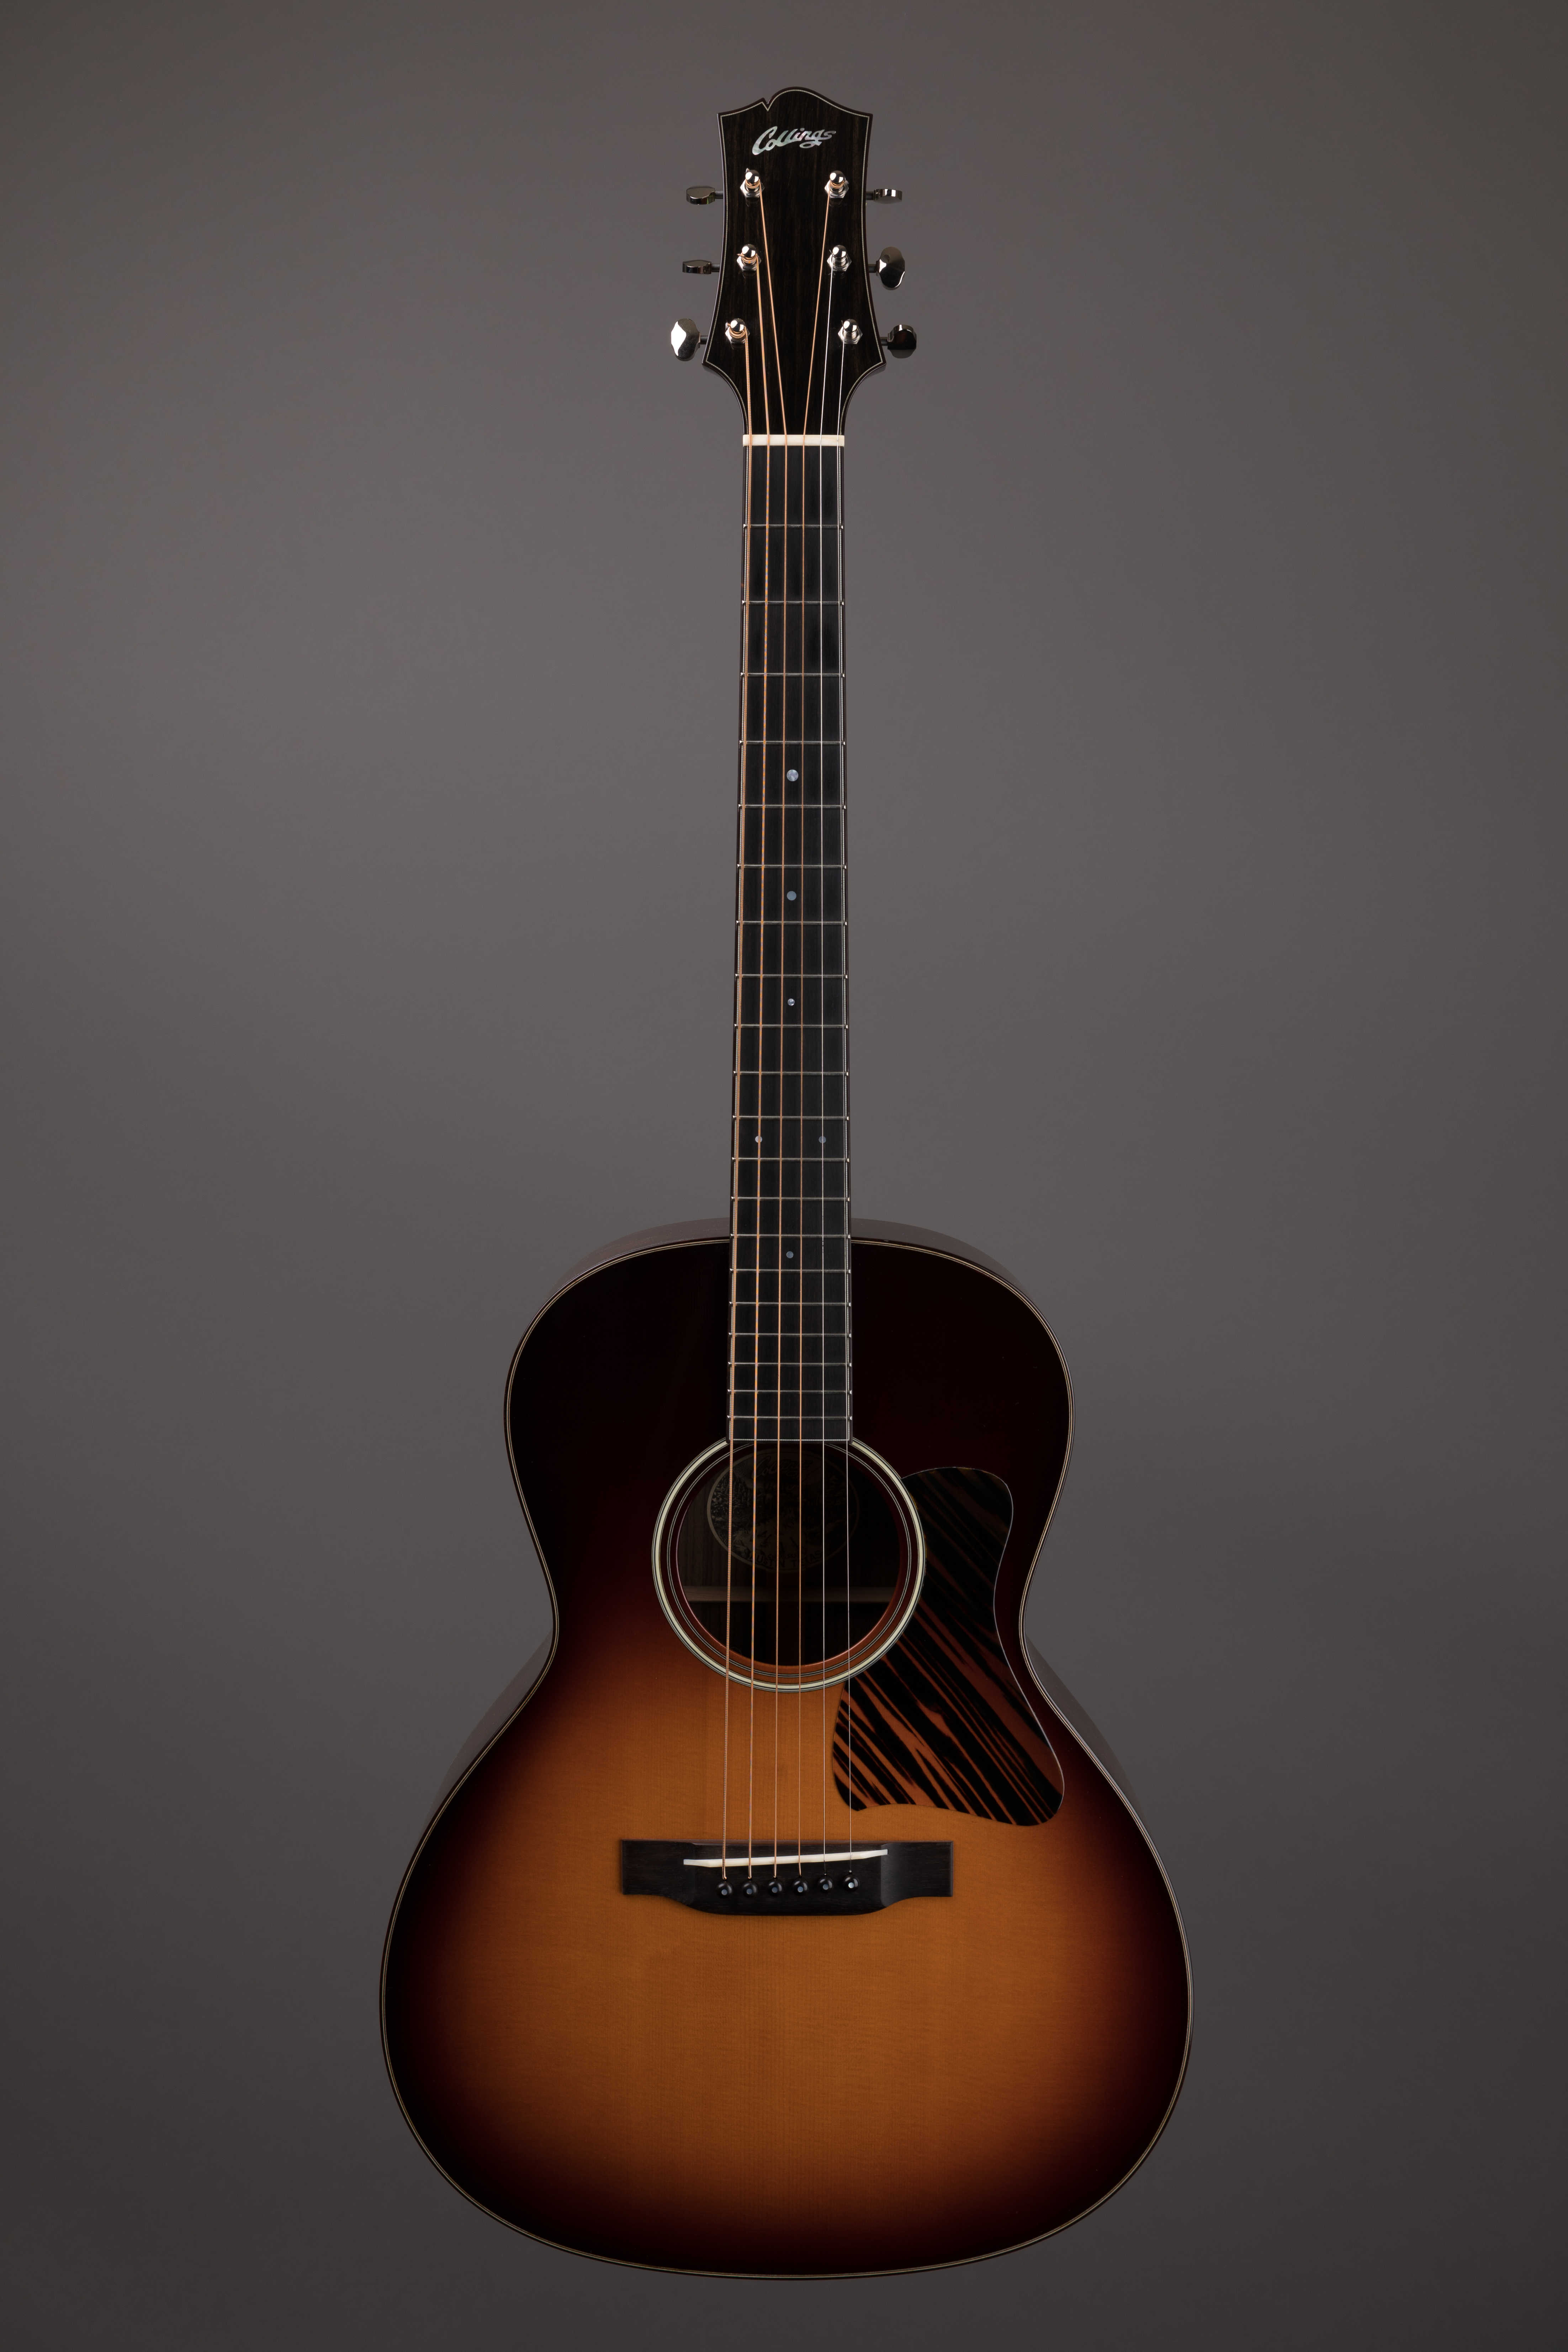 C10 Deluxe Short Scale Sunburst